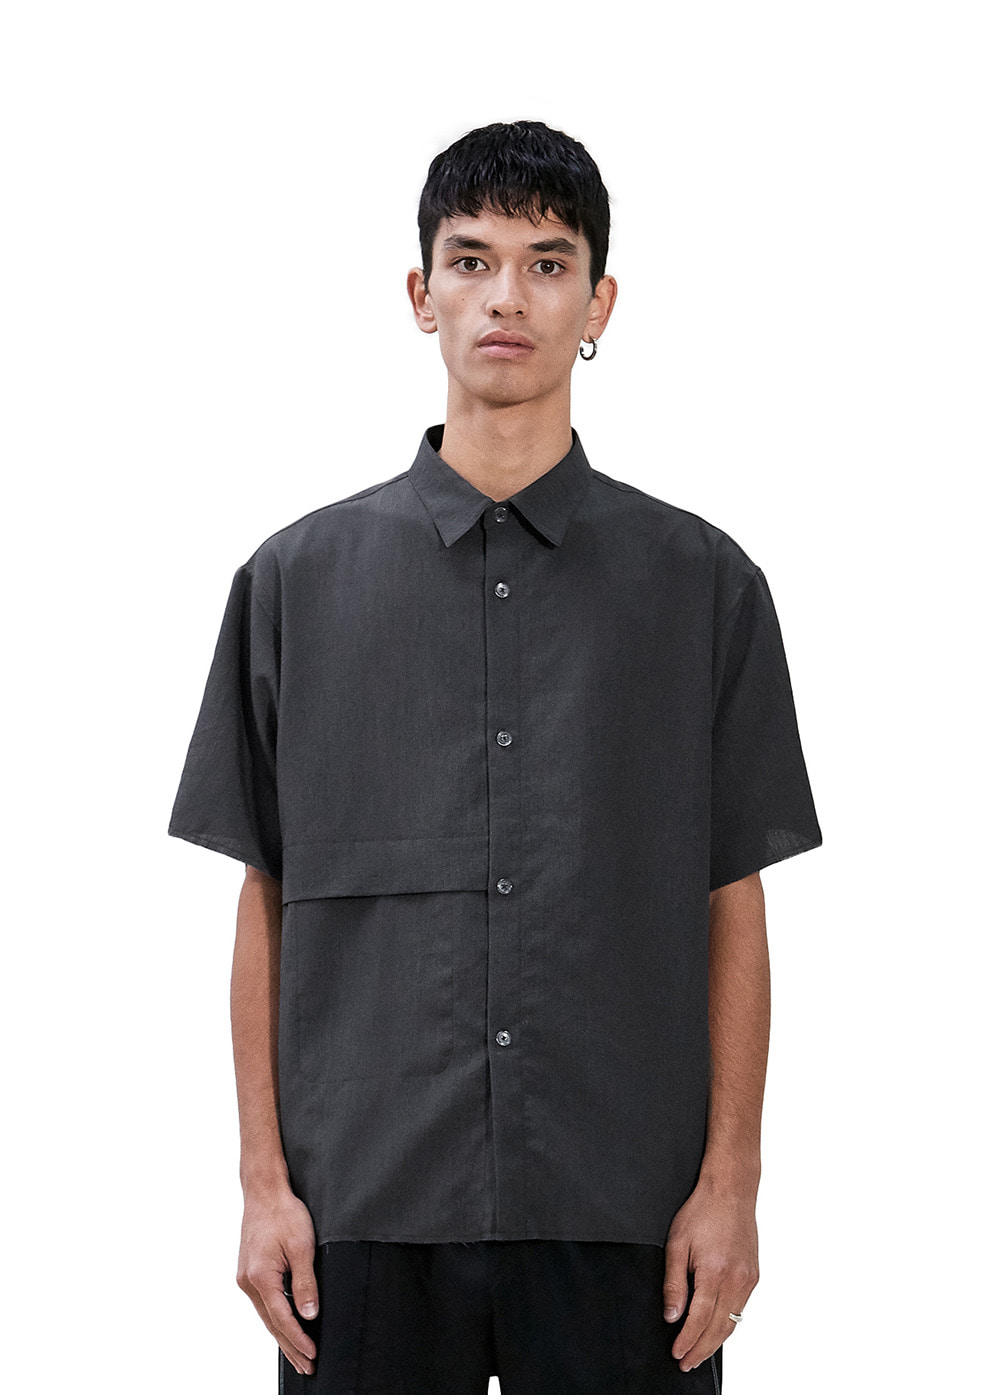 CUT-OFF SHORT SLEEVE SHIRT gray